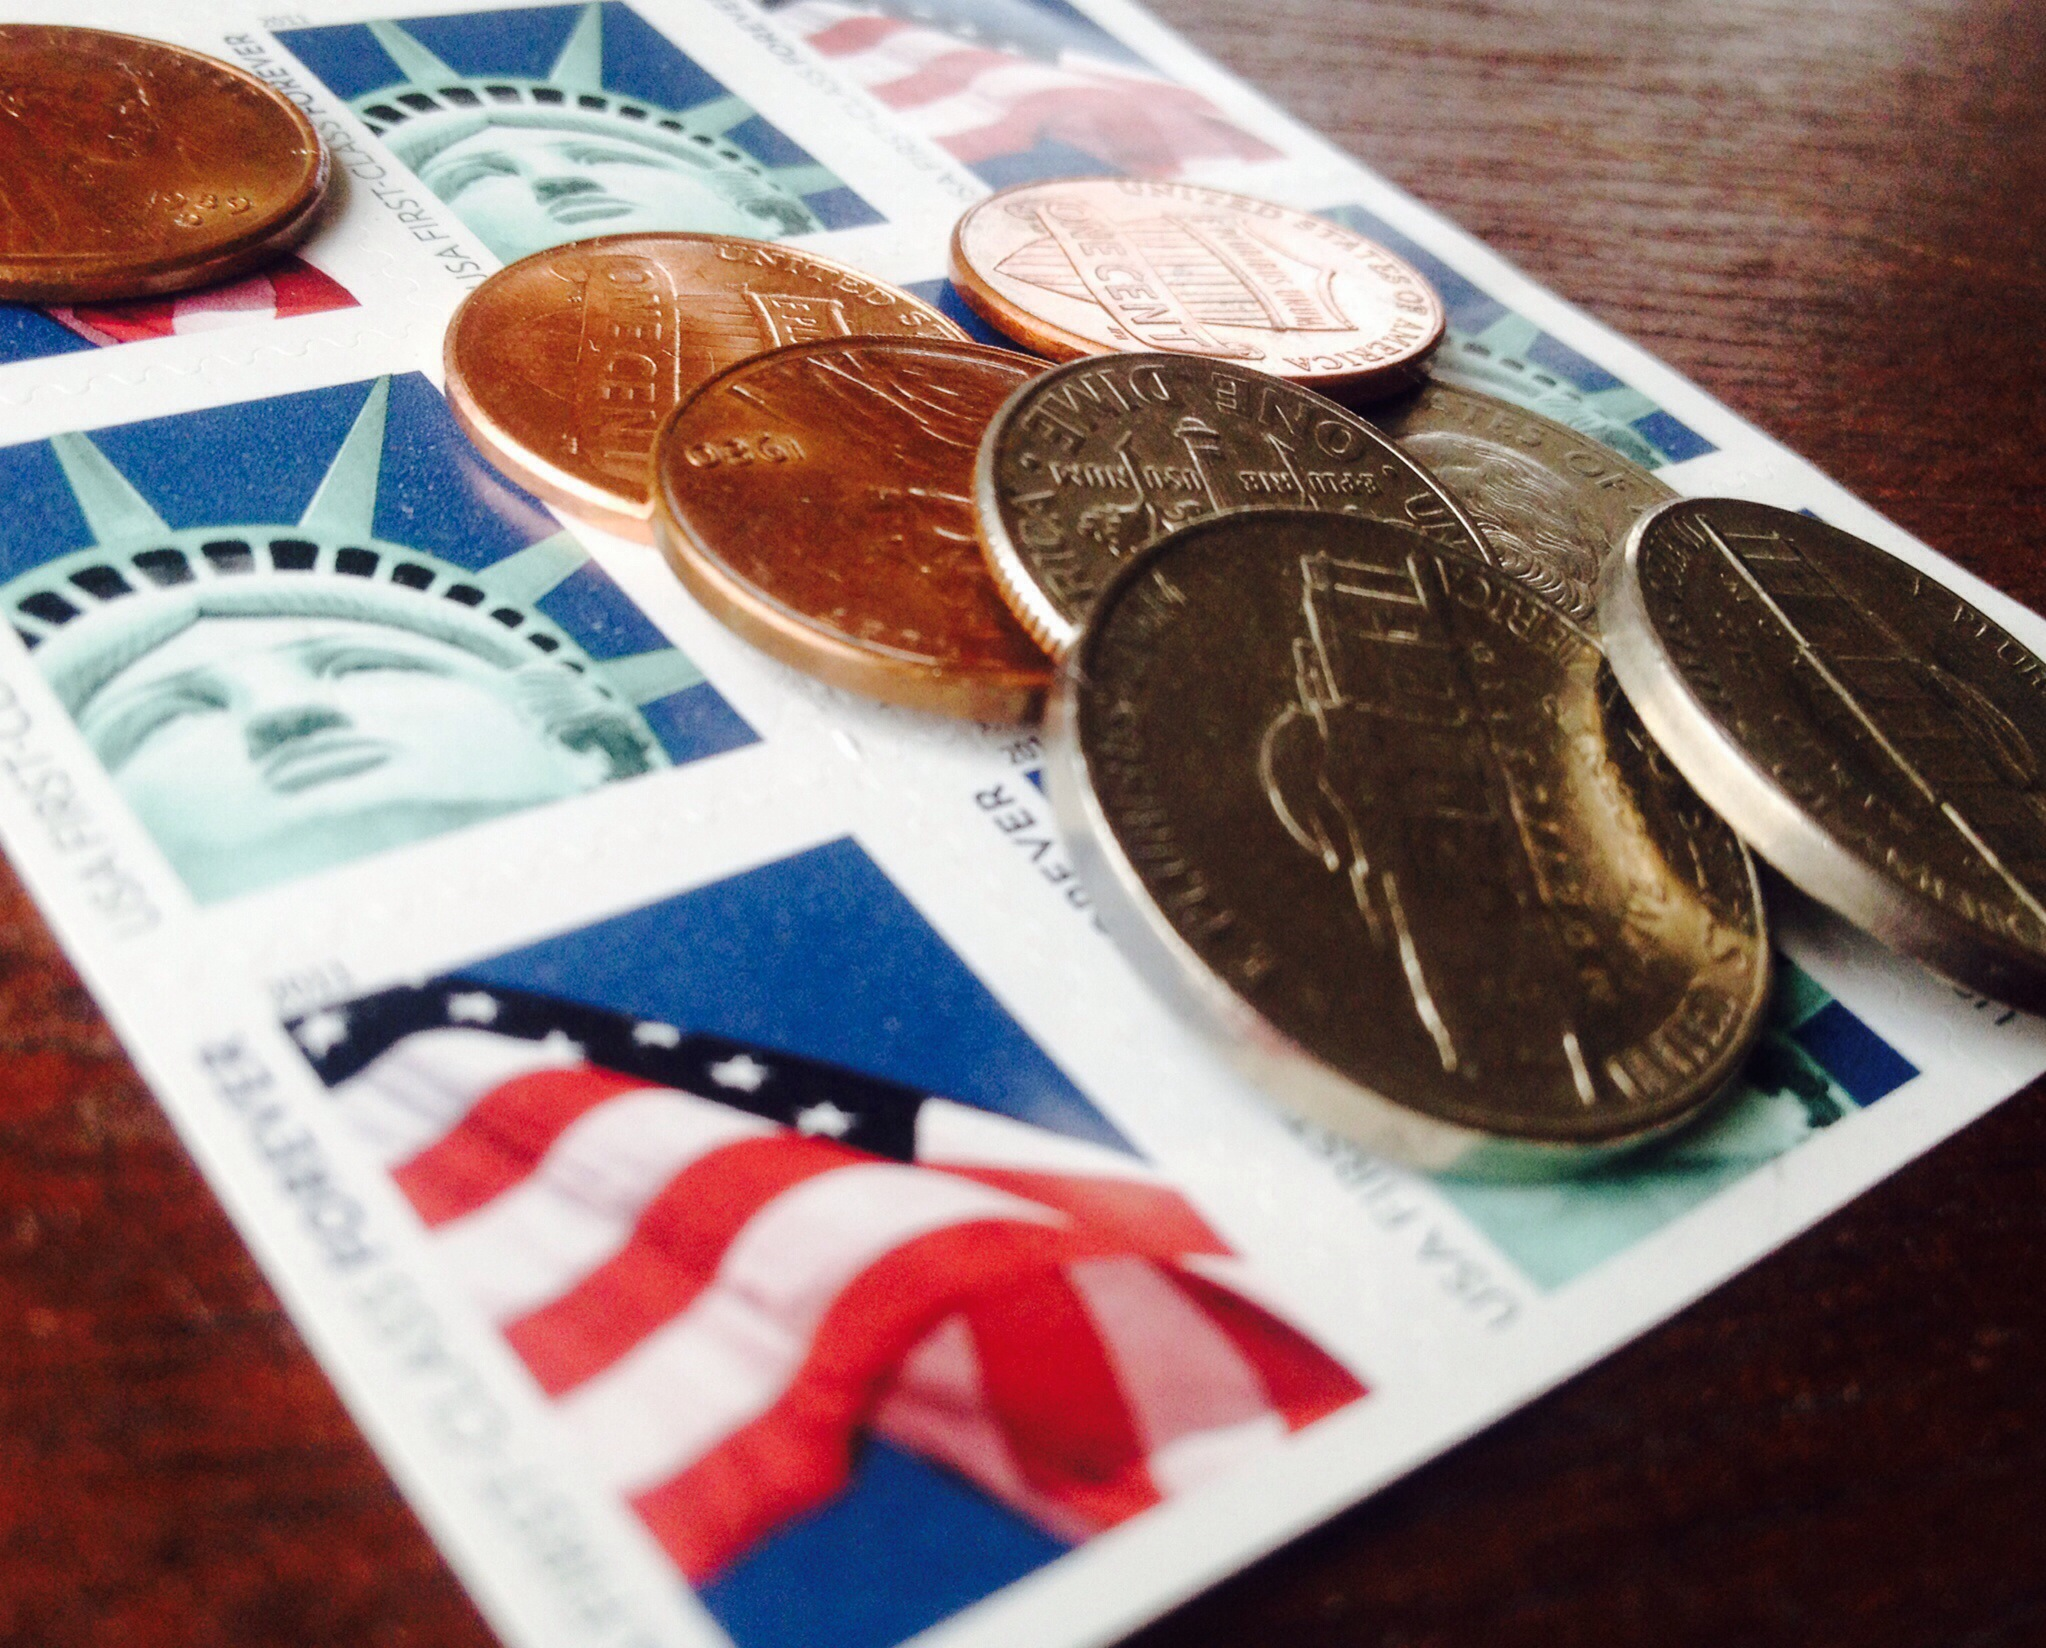 3-Cent Postage Rate Increase in 2014